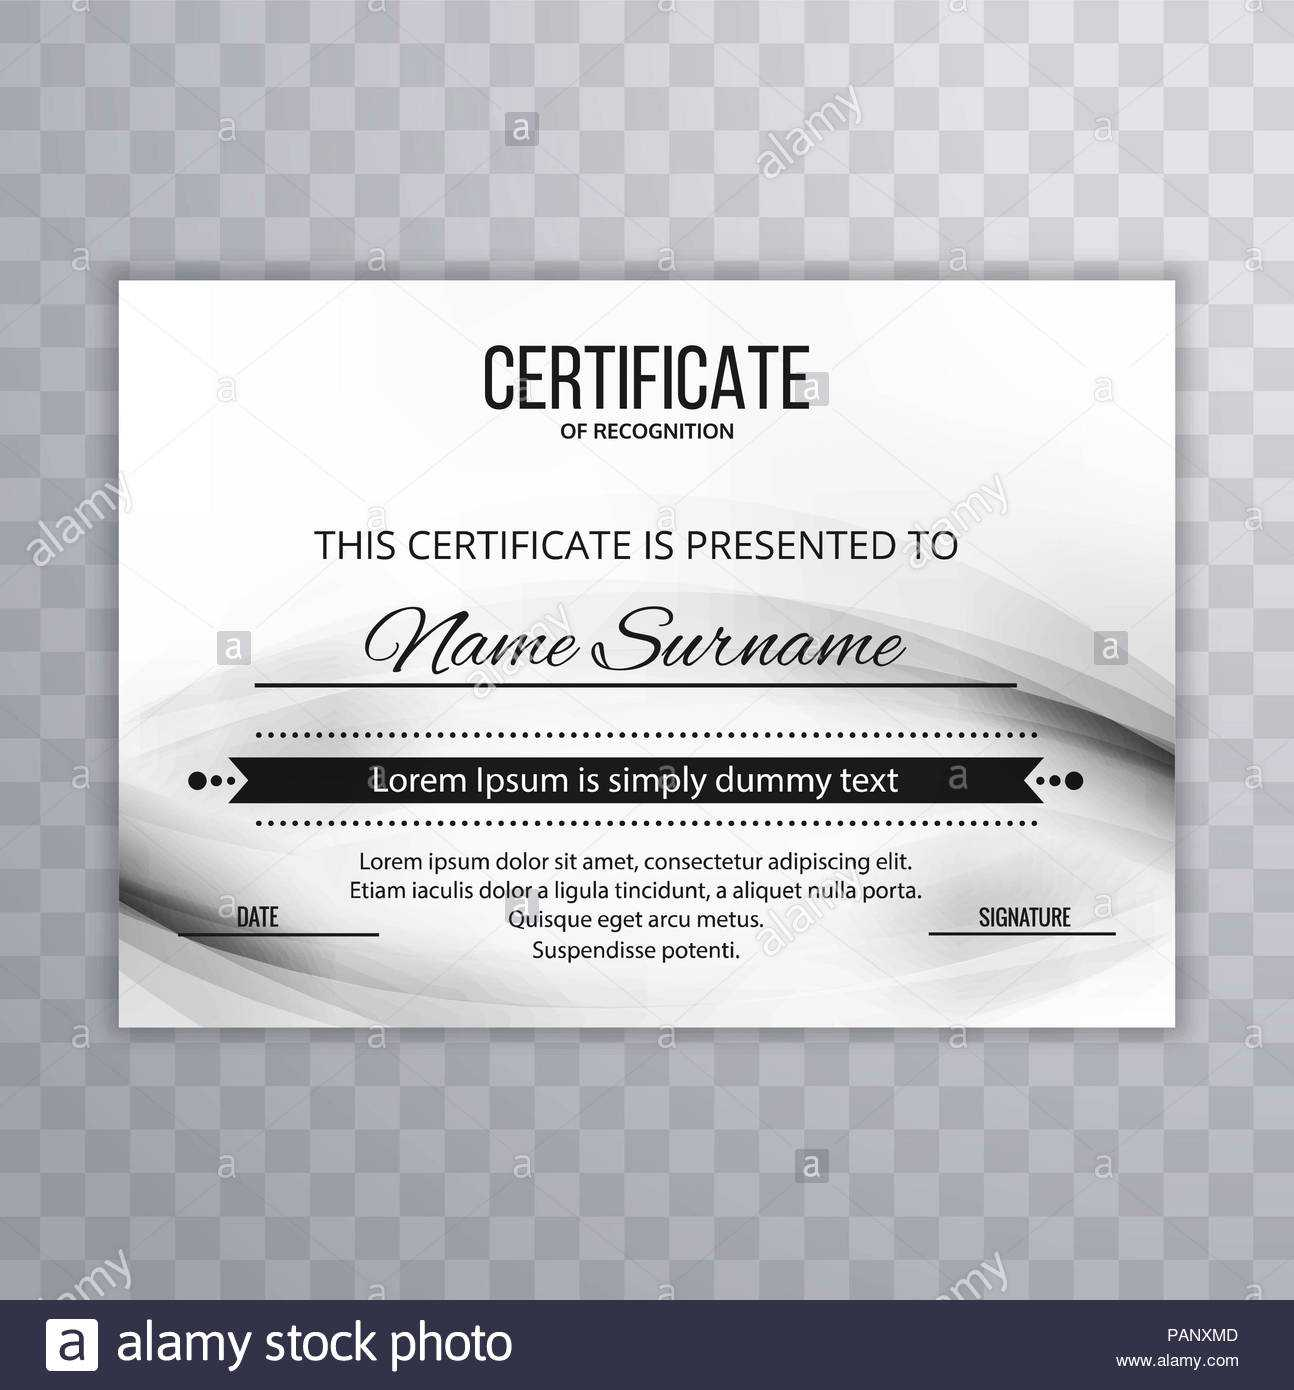 Modern Certificate Template Design Stock Photo: 213152925 Pertaining To Borderless Certificate Templates